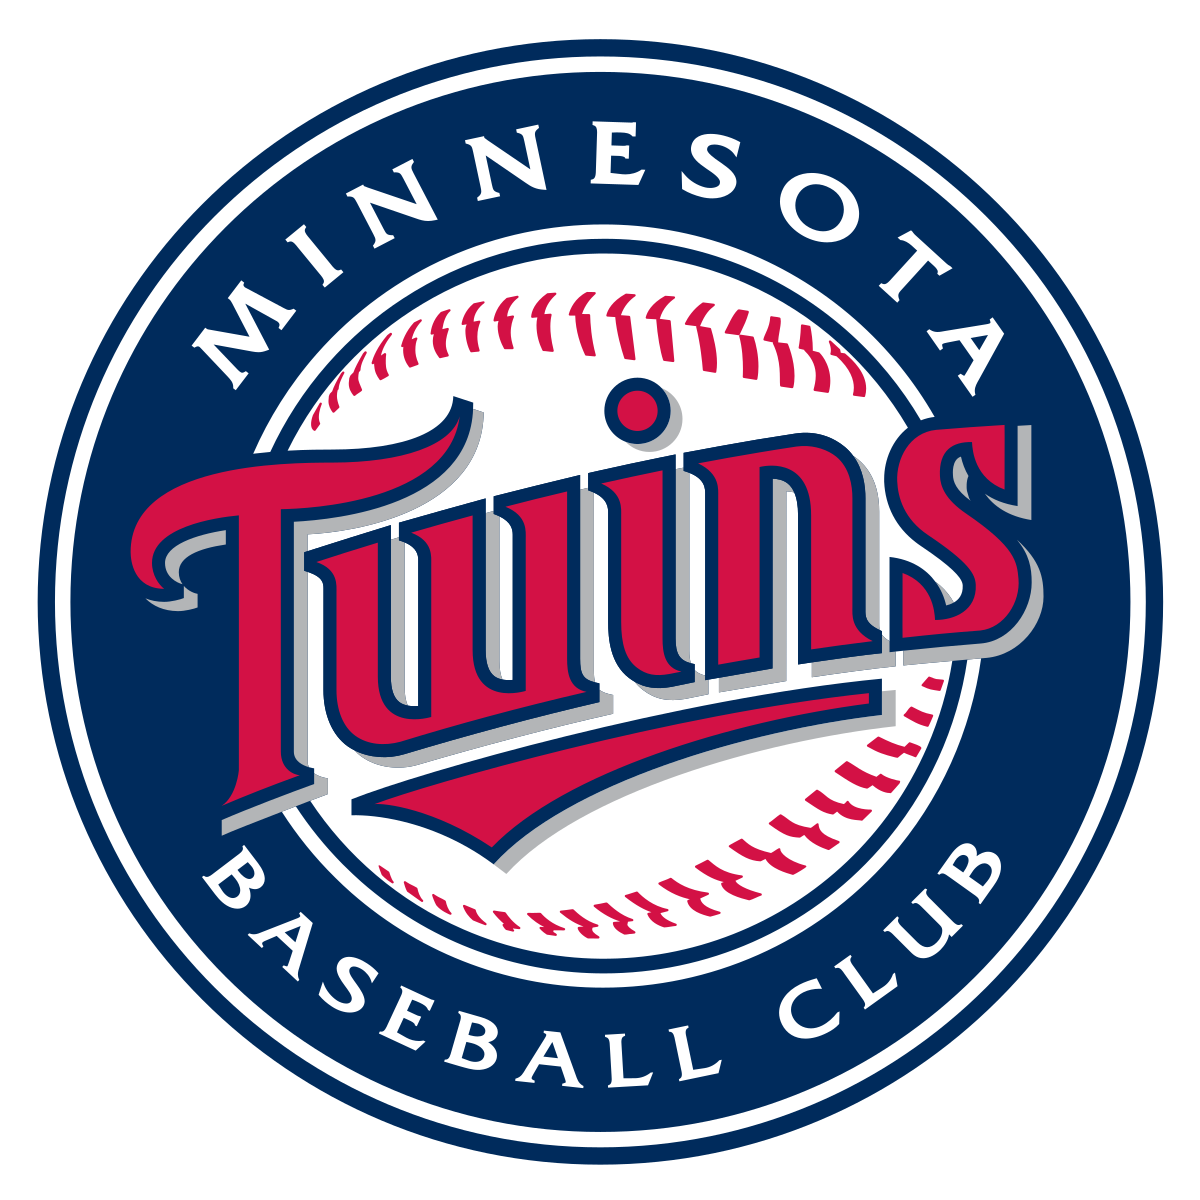 Minnesota drawing sport logo. Twins wikipedia